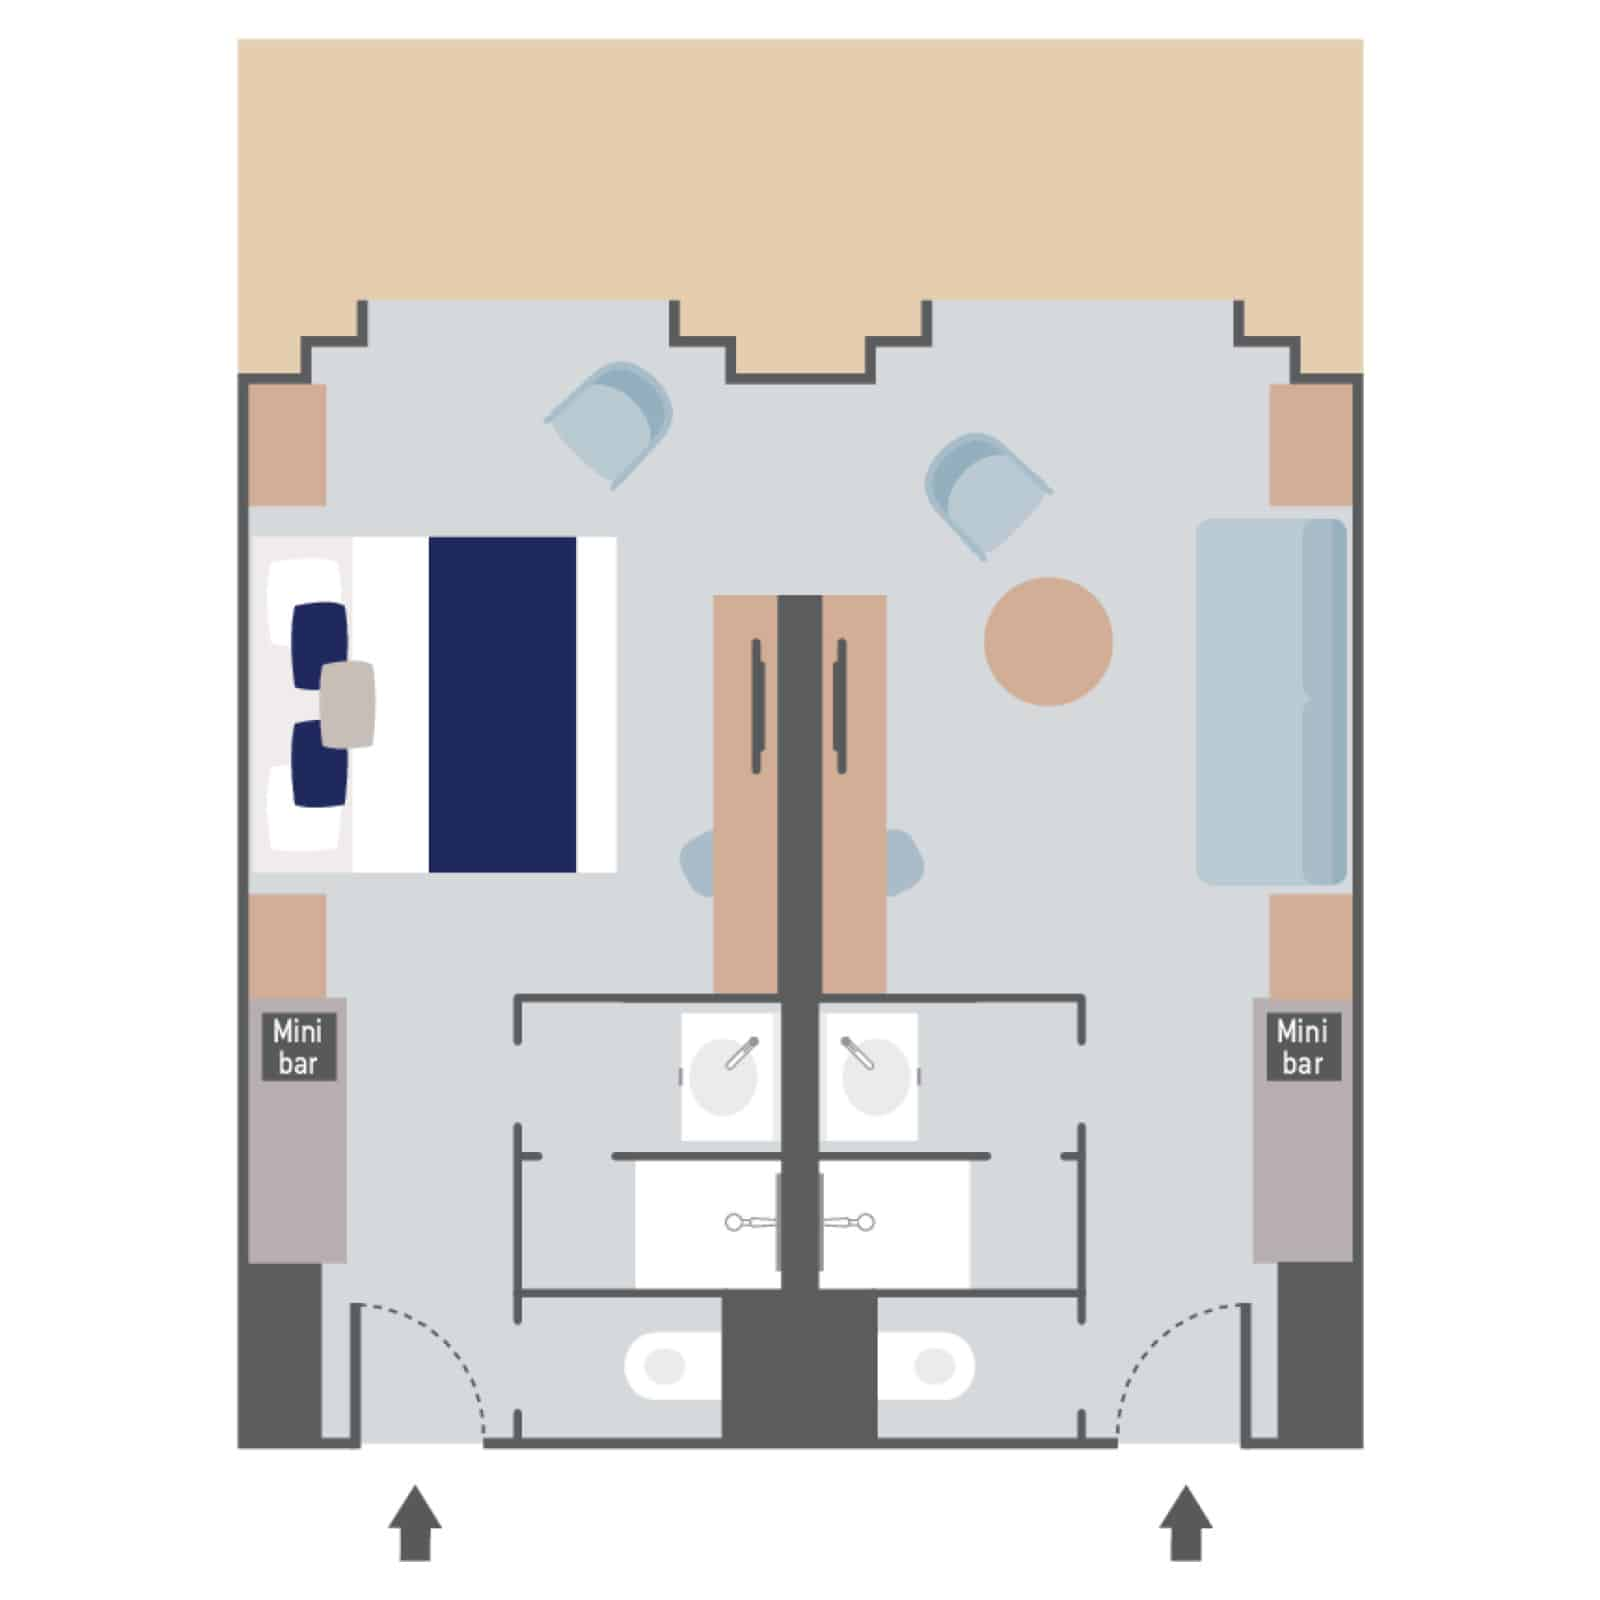 Layout of Prestige Suite aboard Le Commandant Charcot hybrid electric ship with interconnecting rooms, double bed, couch, 2 bathrooms, 2 closets & 2 doorways to a double balcony.